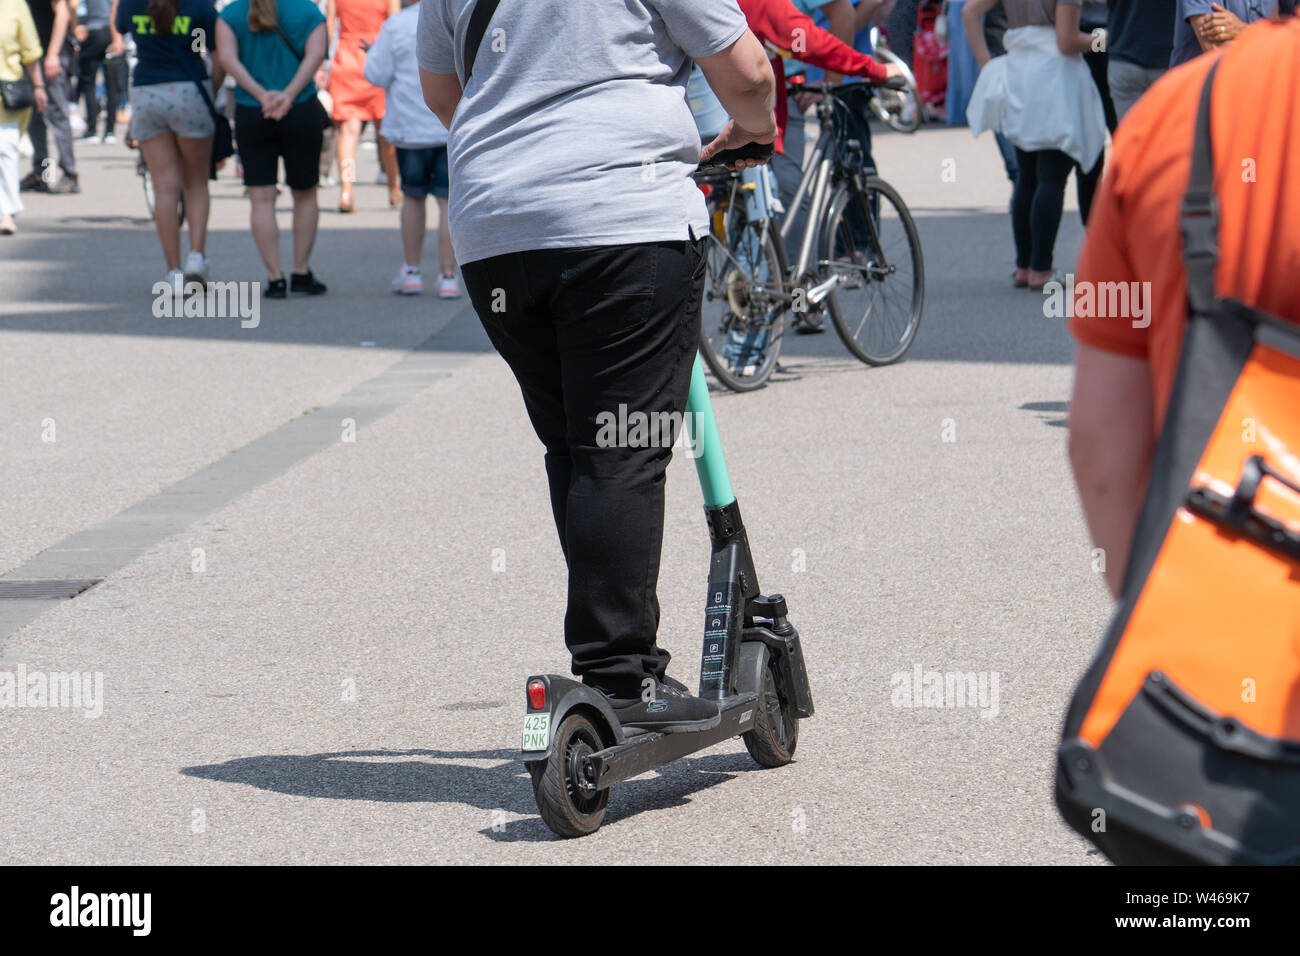 18 July 2019, Hessen, Frankfurt/Main: A man drives on a rented e-scooter through a busy pedestrian zone. Photo: Frank Rumpenhorst/dpa - Stock Image